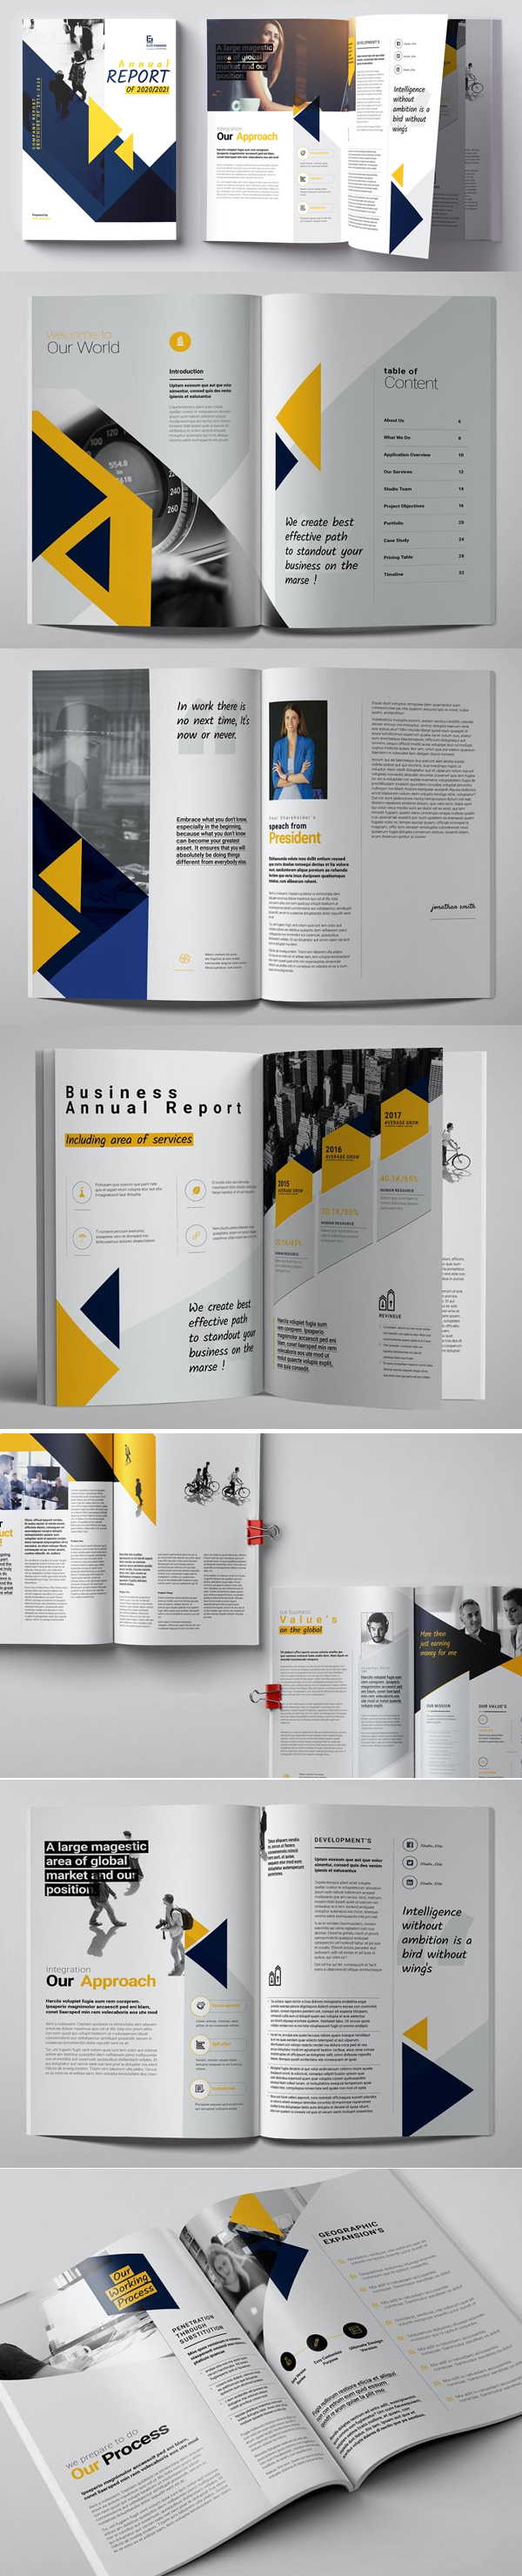 Stunning Annual Report Brochure Template